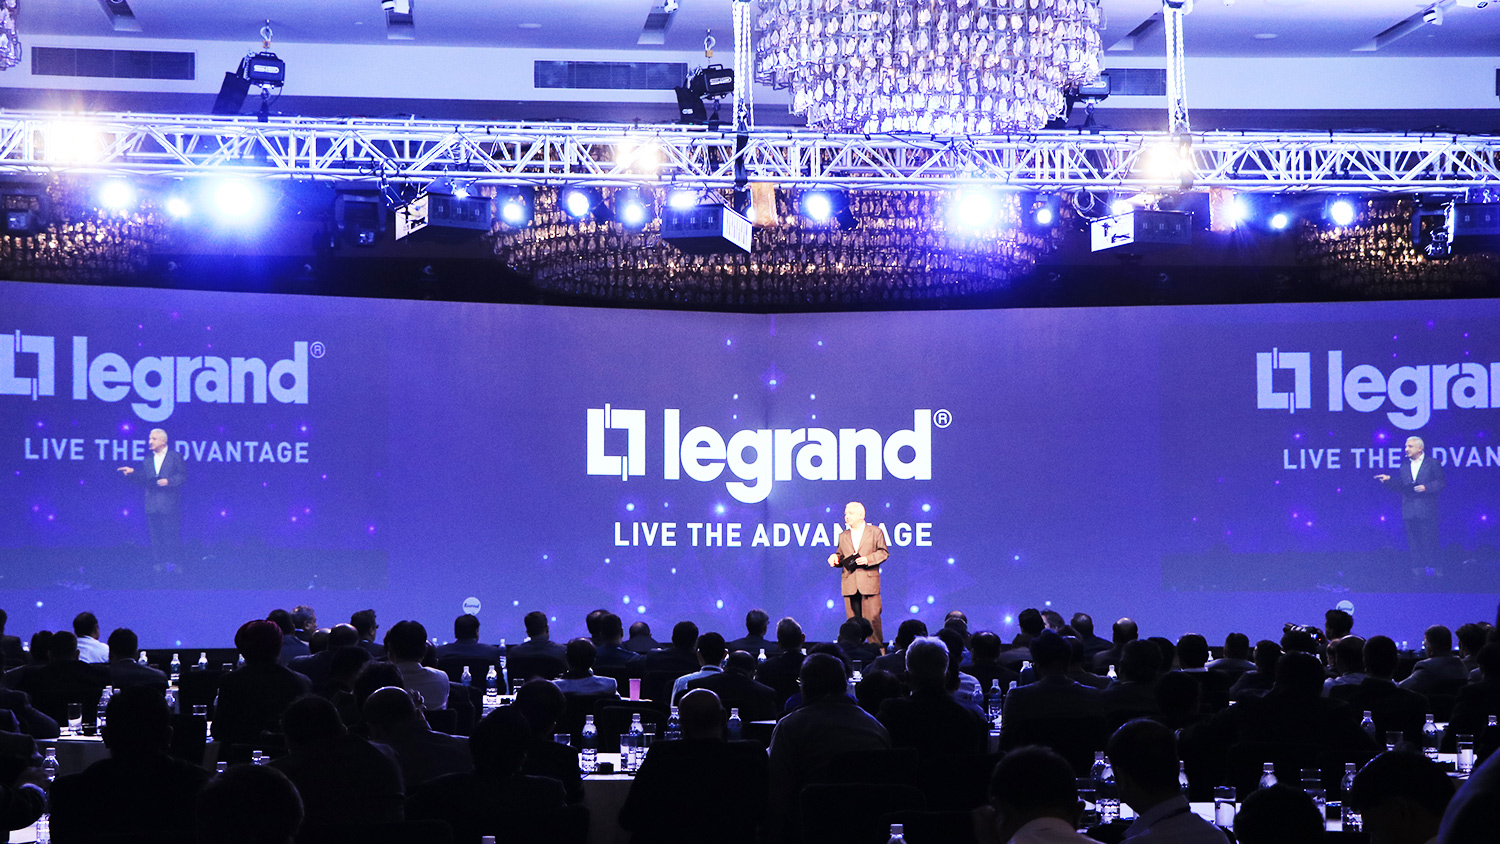 We provide projector screen rental services and comprehensive audio-visual rental services for events in Hong Kong. We own and offer a full suite of audio-visual equipment for hire including audio equipment, LED lighting, video projection, LED walls and the professional technicians to operate it to perfection.